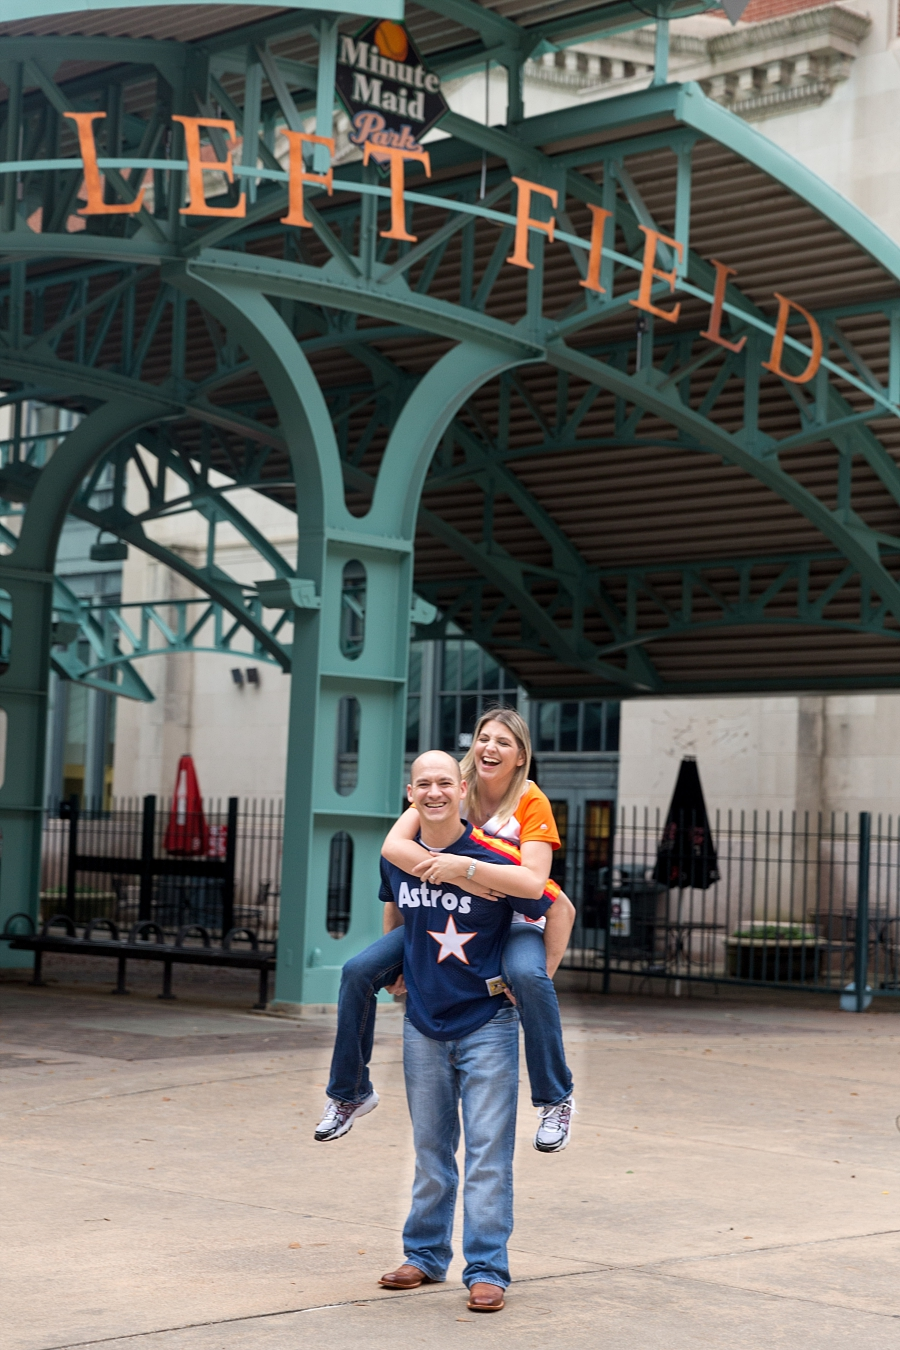 Stacy-Anderson-Photography-Houston-Astros-Baseball-engagement-photo_0041.jpg